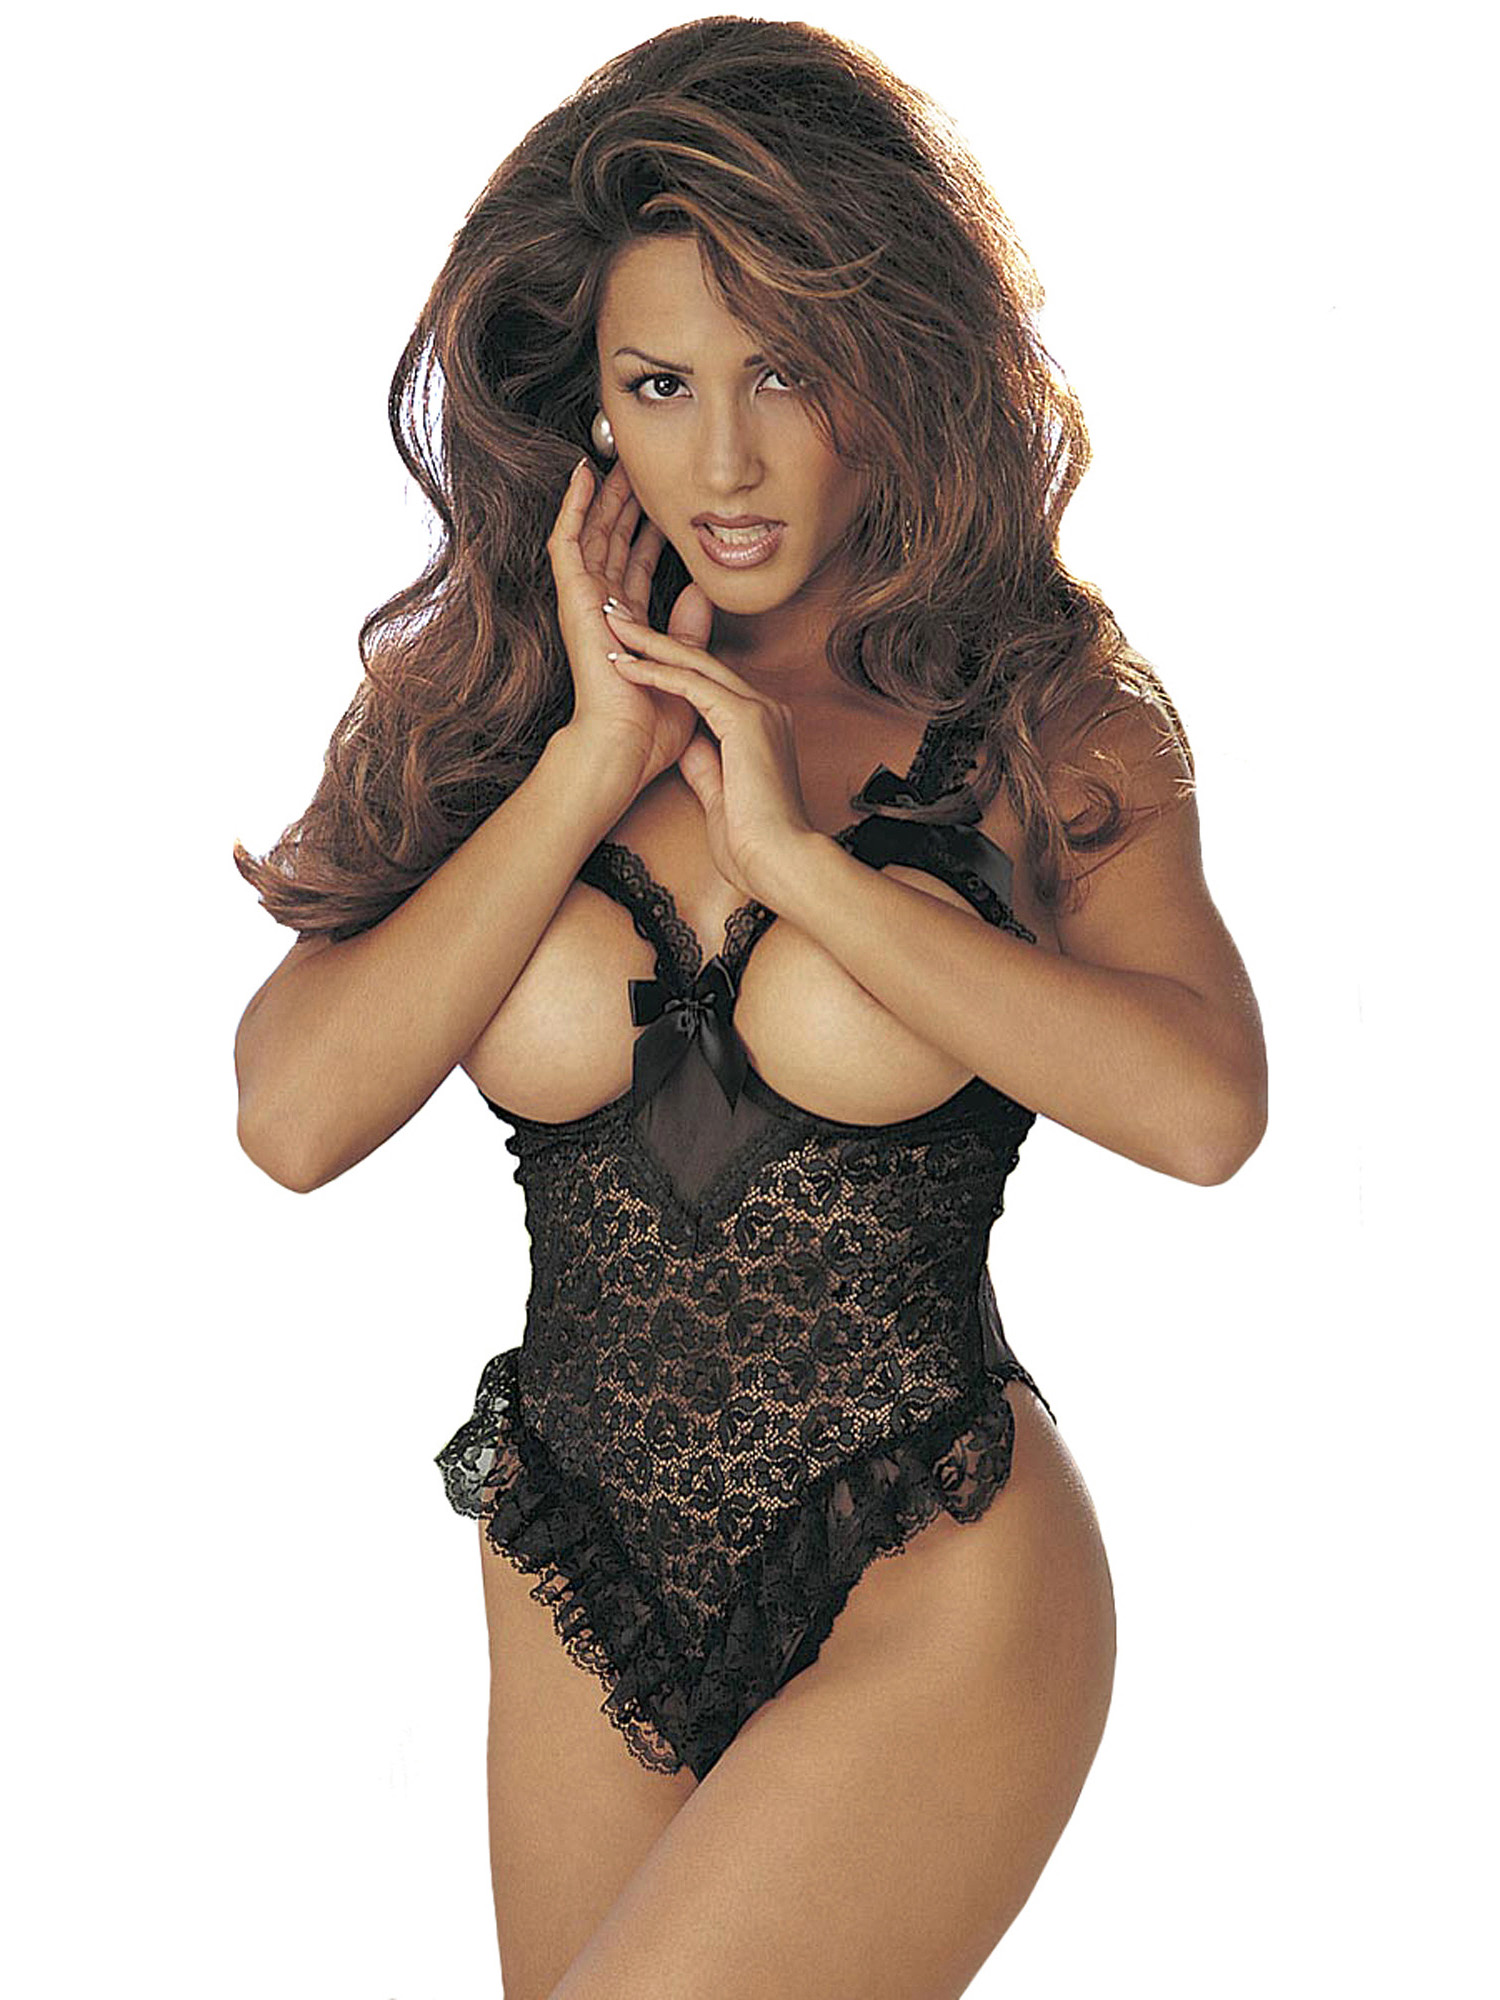 Plus Size Sexy Full Figure Lace Cupless Teddy Lingerie | eBay